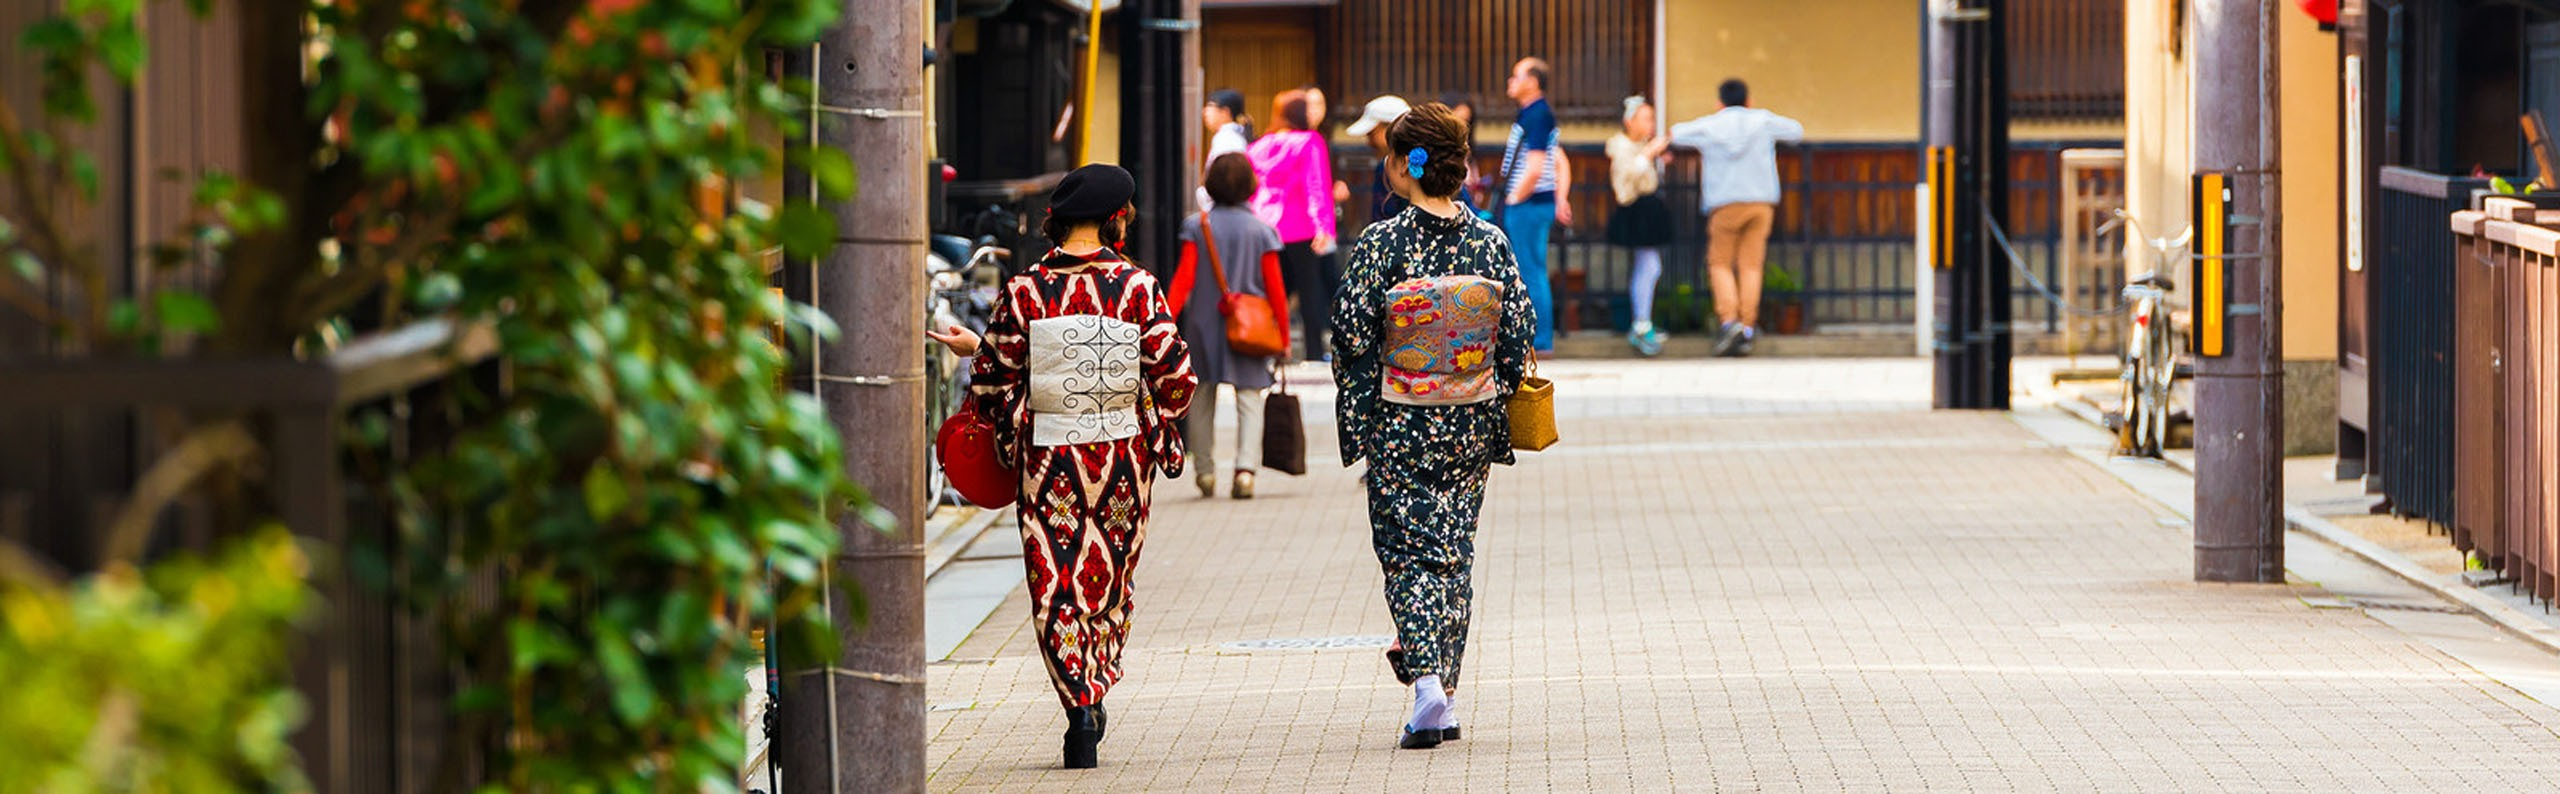 A Trip to Japan Cost — How to Make the Most of Your Budge